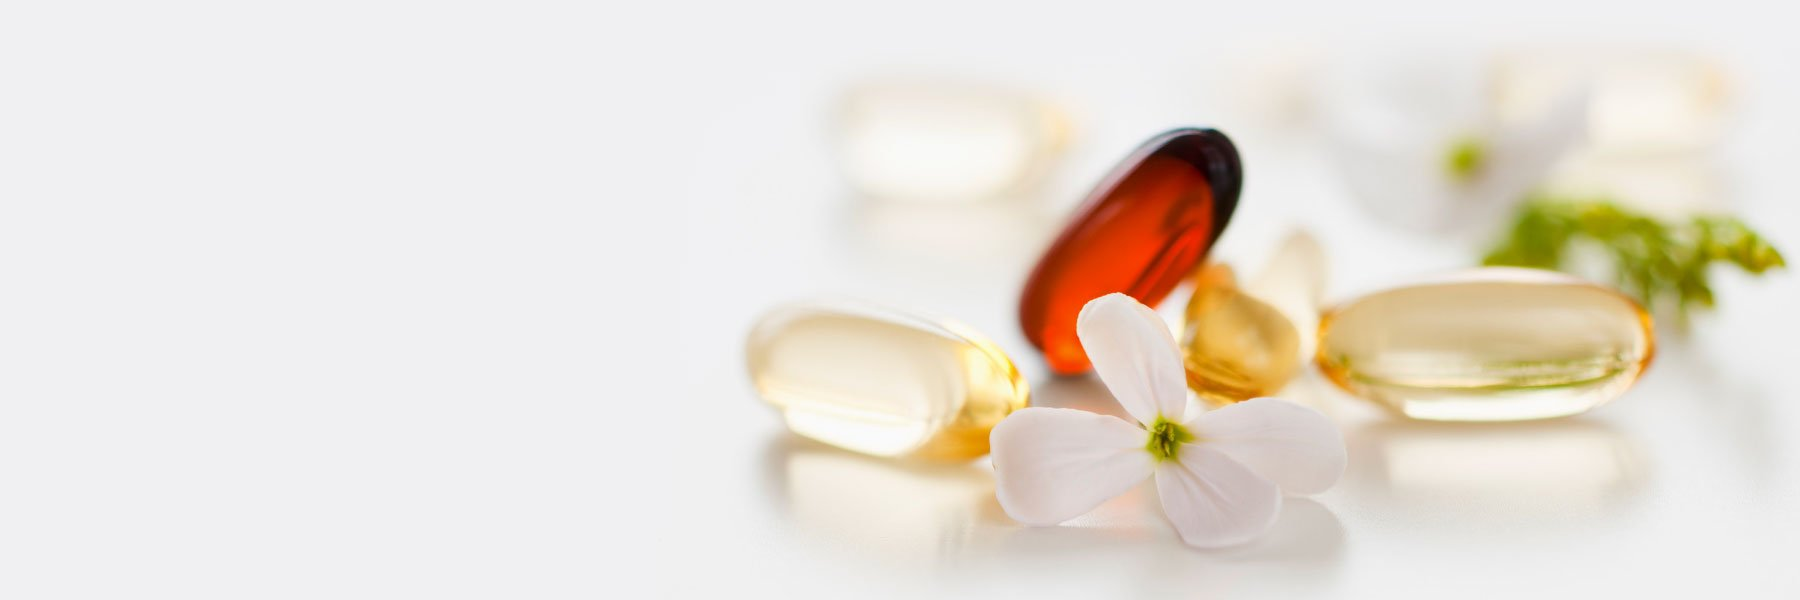 Best Japanese Supplements and Health Food in Japan